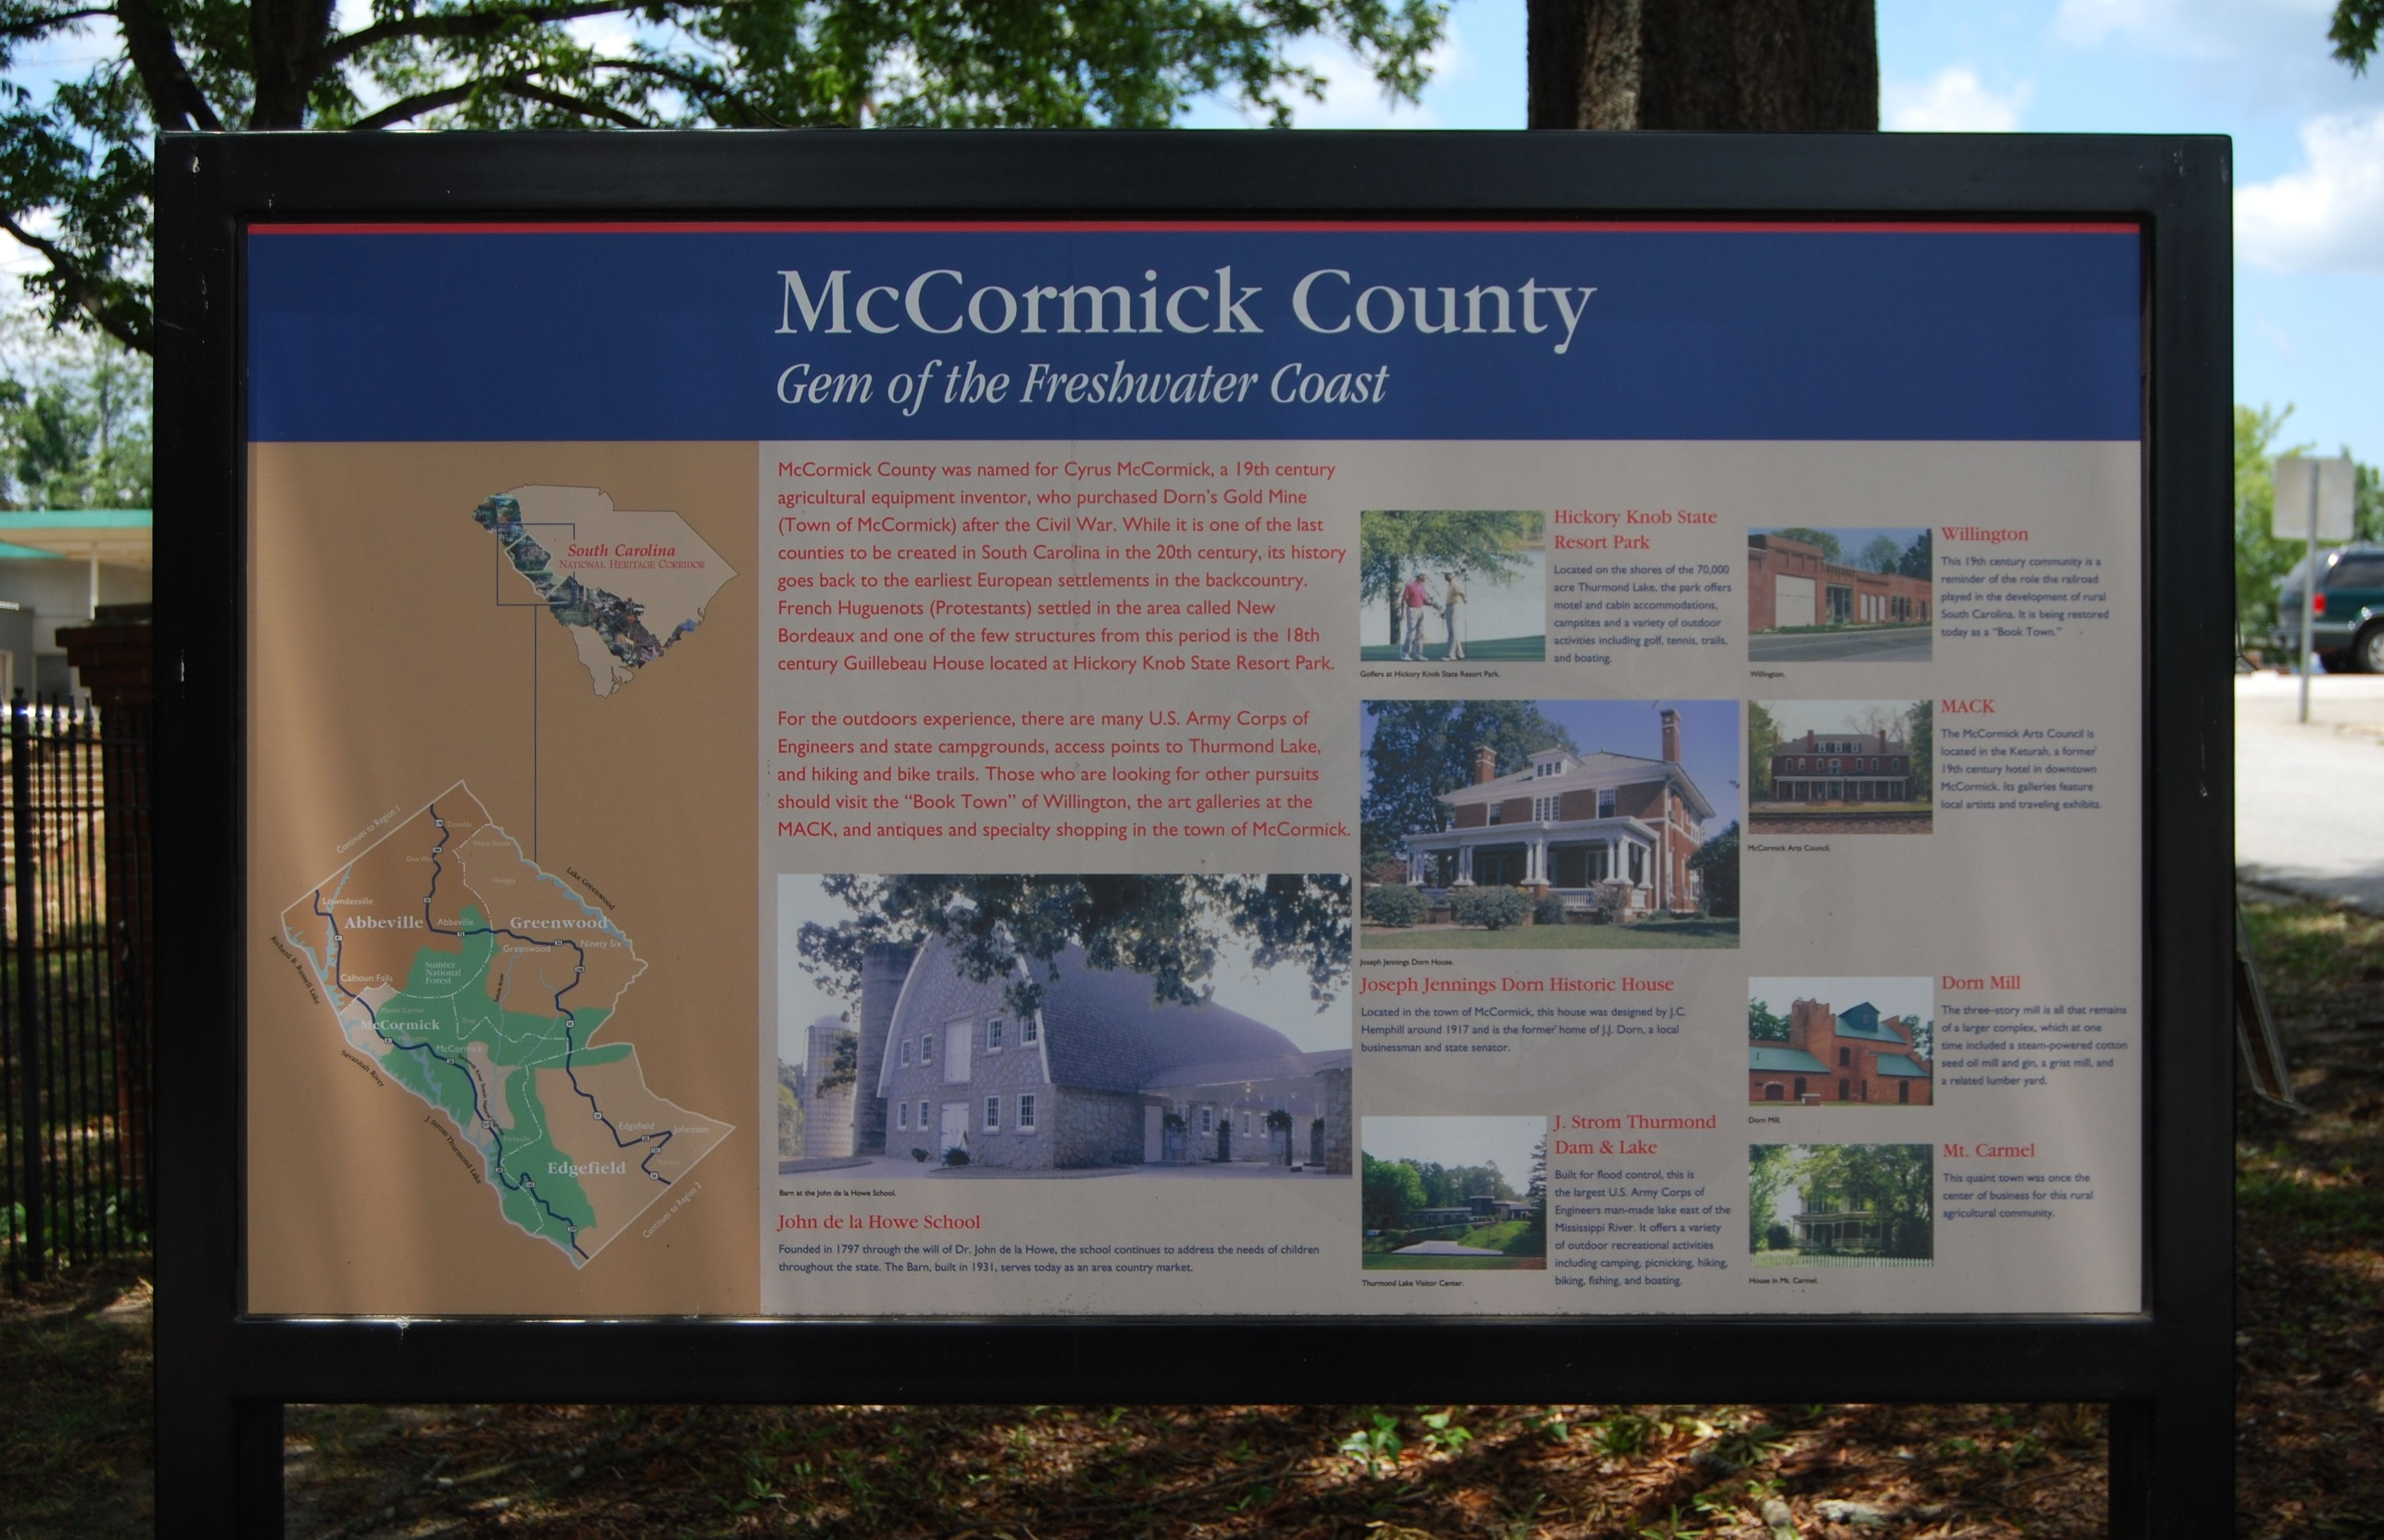 McCormick County / MACK Marker